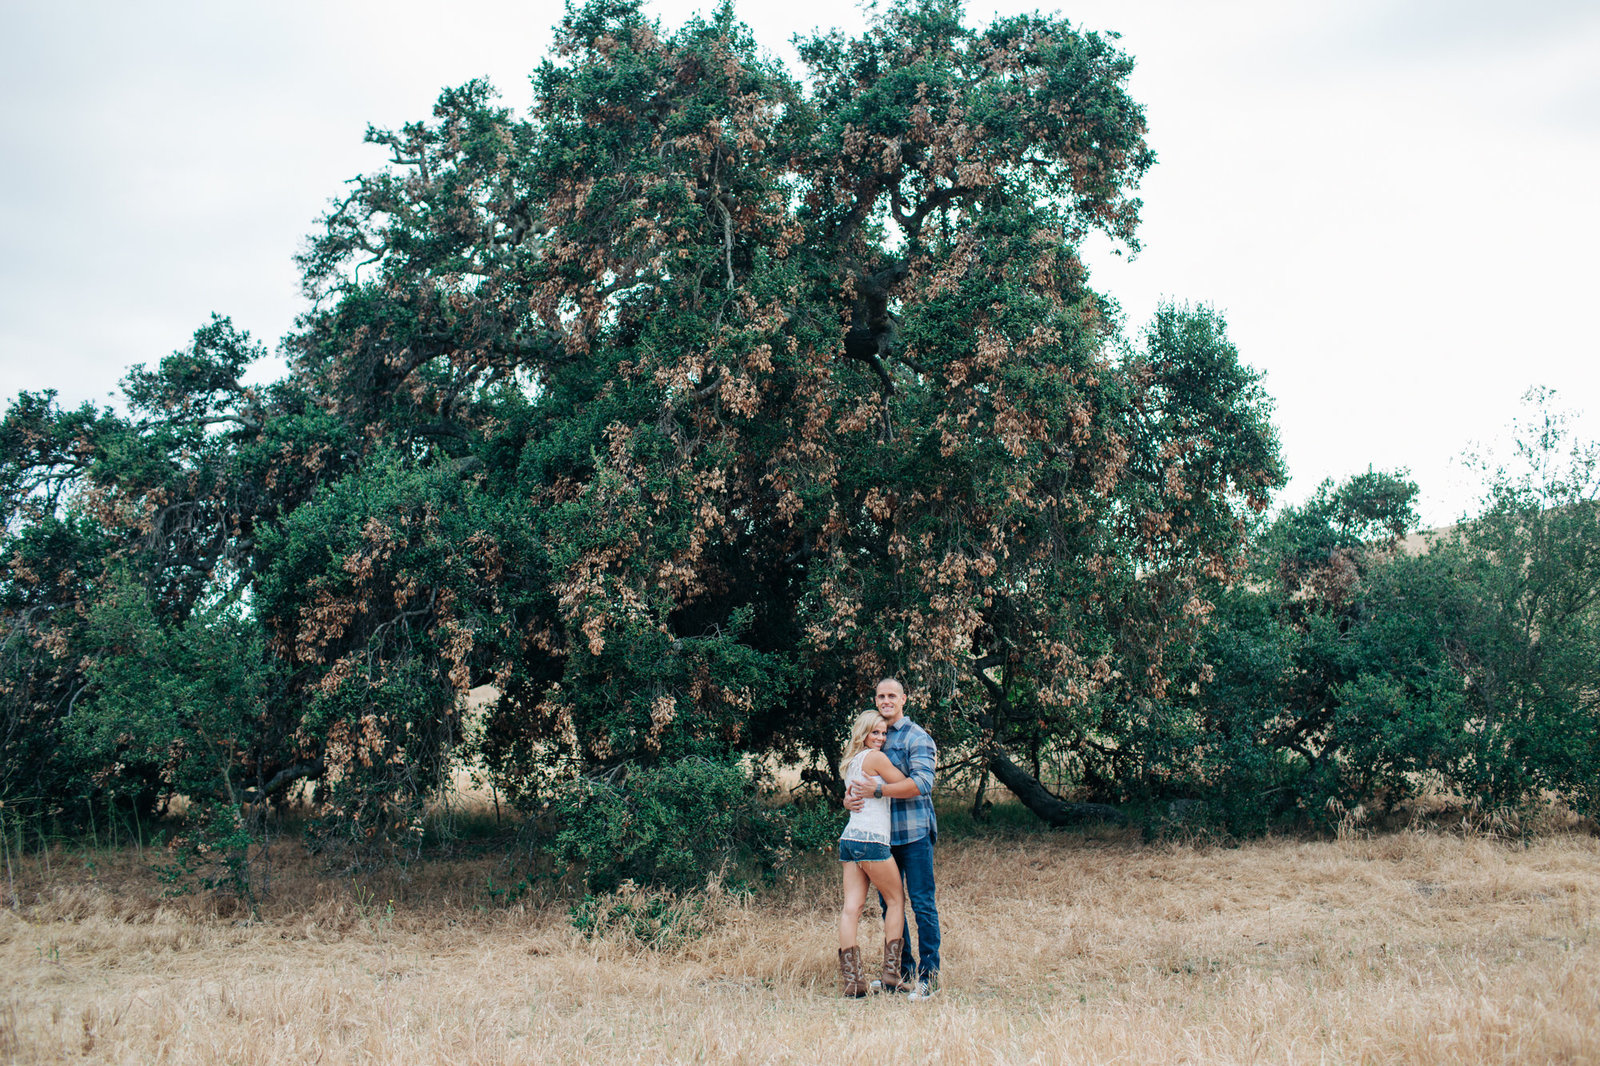 Orange_County_Engagement_Photos_Lily_Ro_Photography-0297